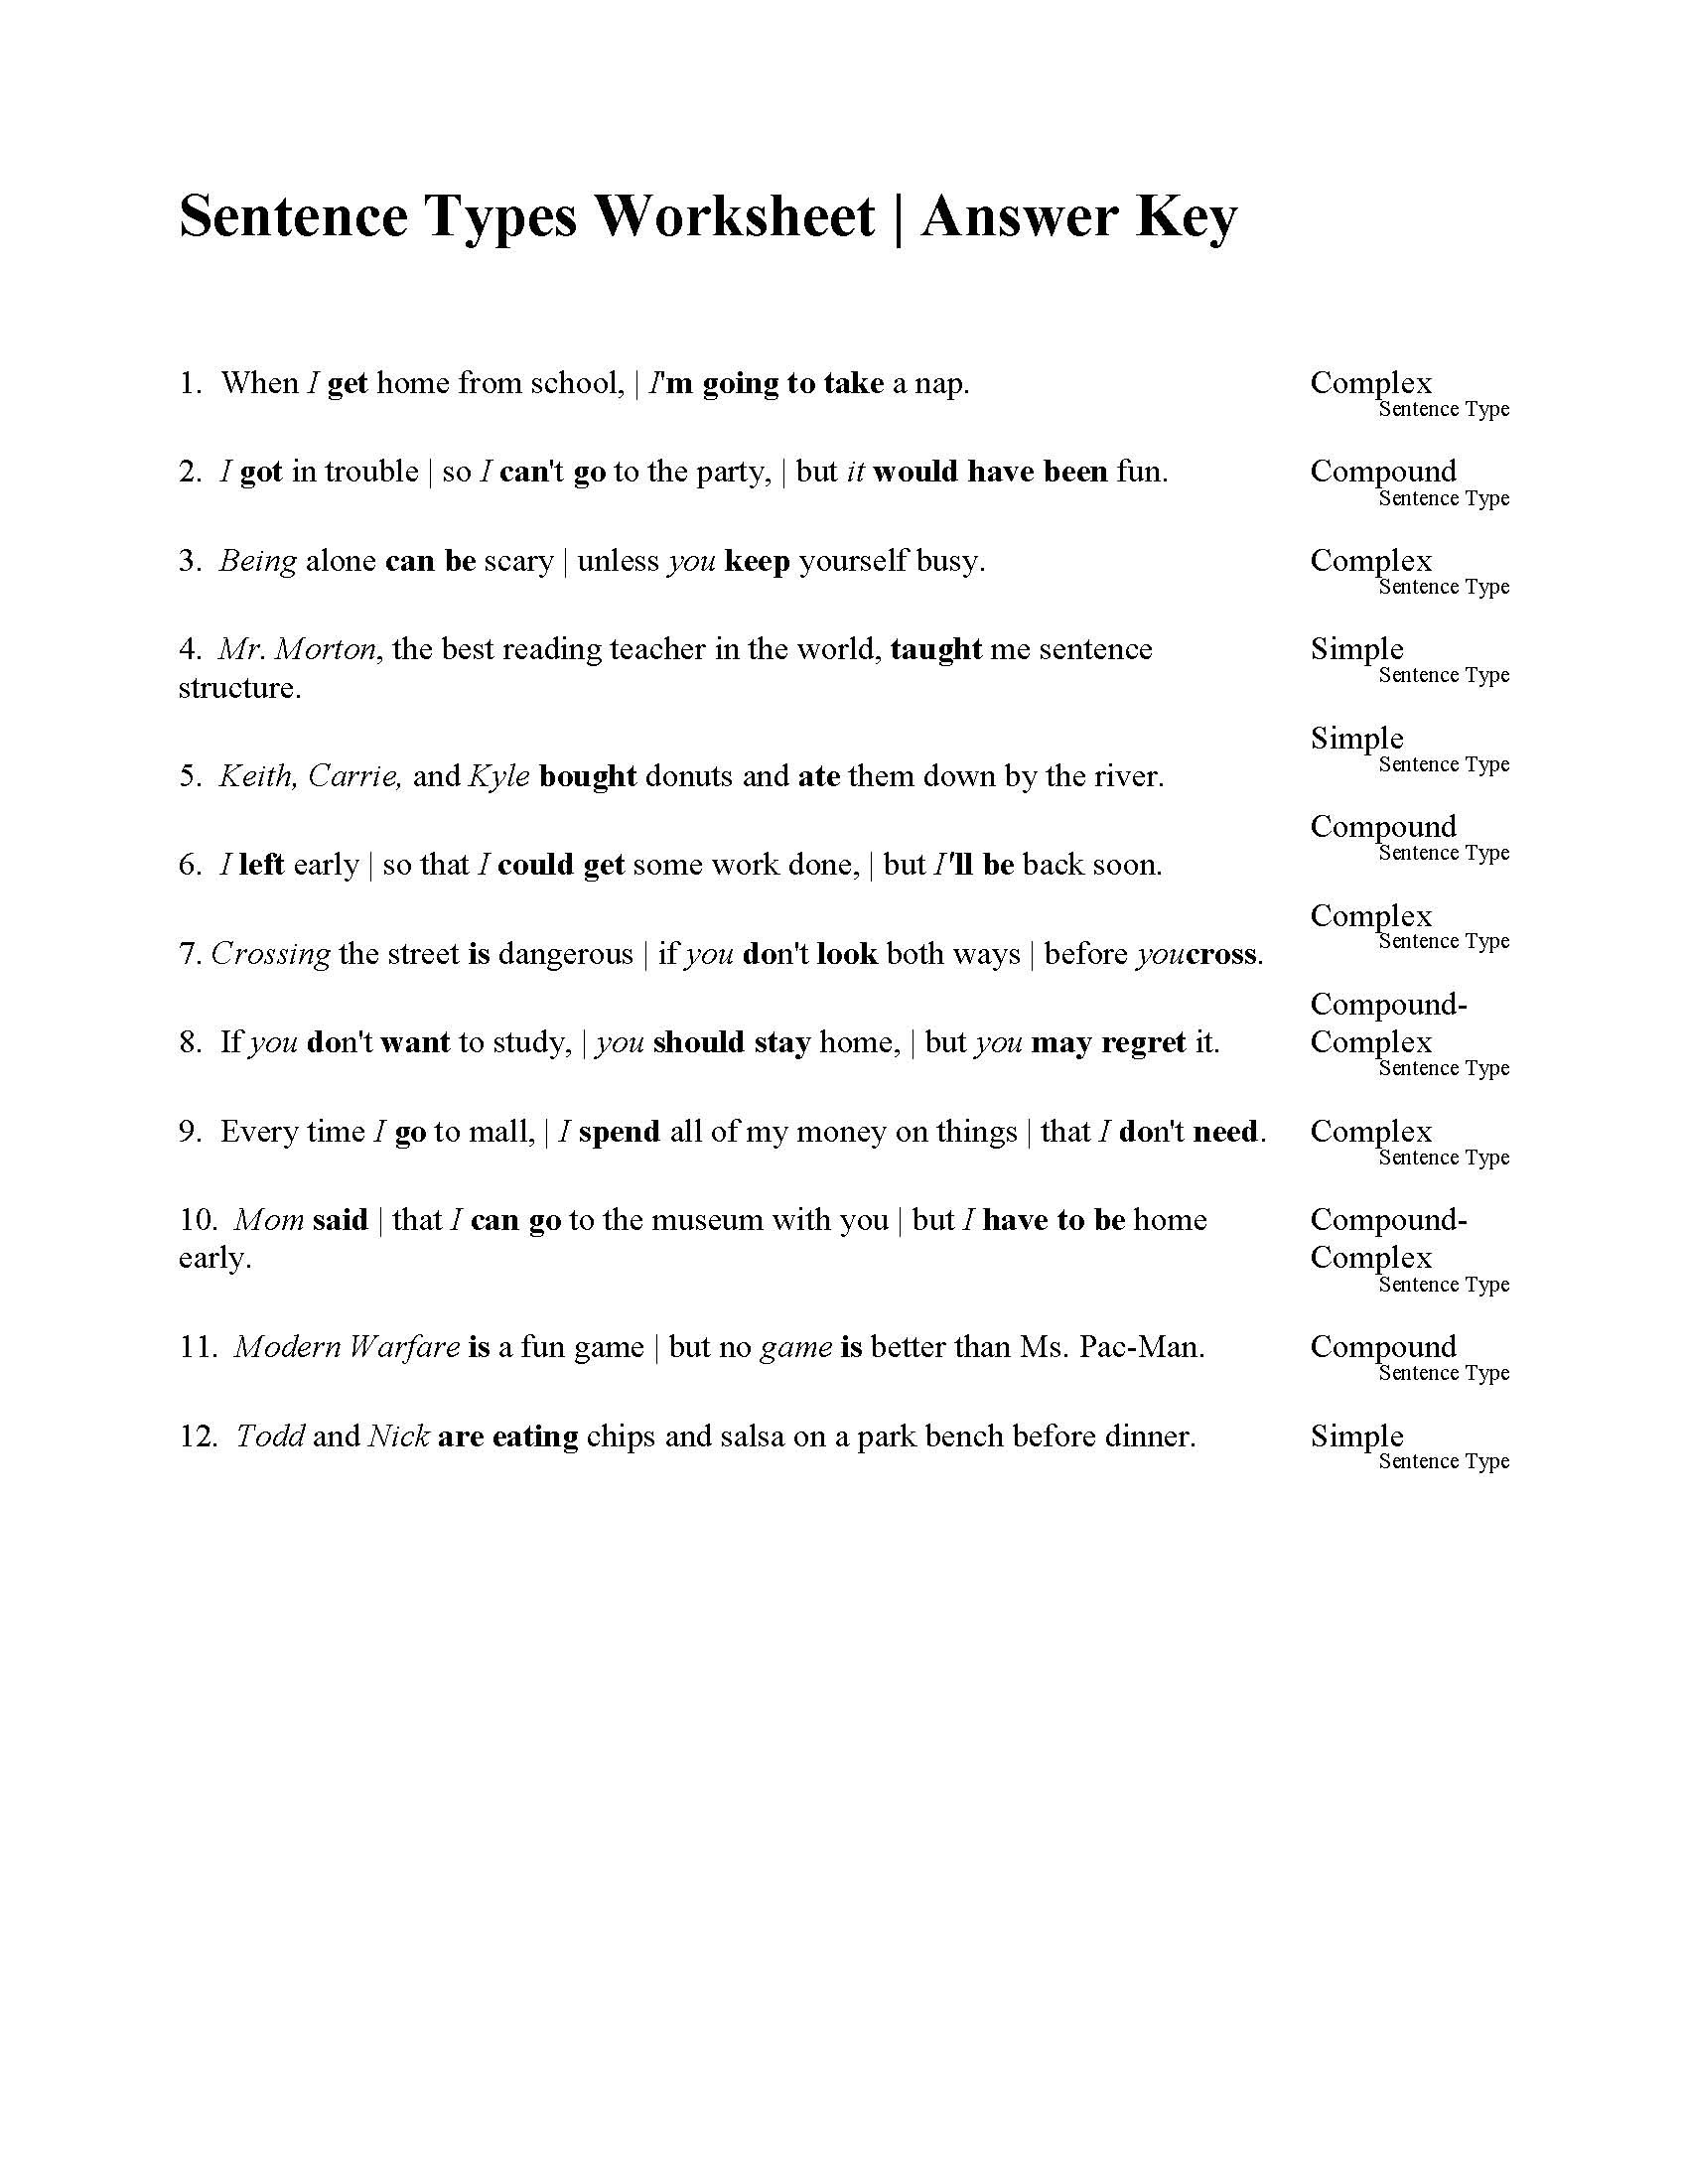 Number Pattern Worksheets 5th Grade Website that solves Math Word Problems Alicorn Coloring